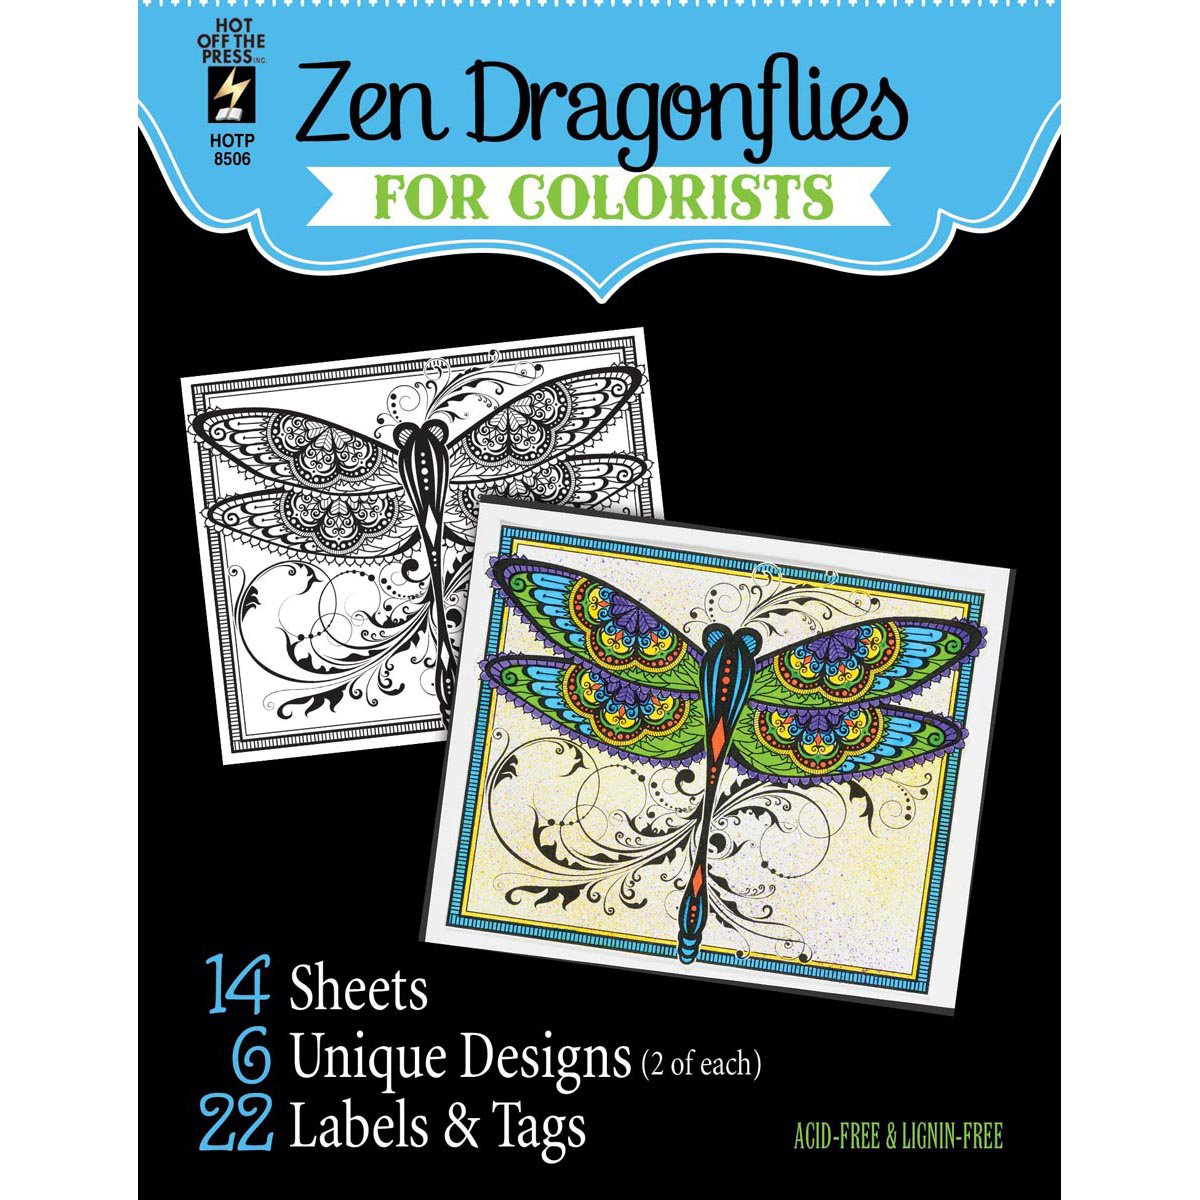 Hot Off the Press For Colorist Book - Zen Dragonflies for Colorists - 14 Black & White Sheets of Heaay Card Hot Off The Press Inc 8506